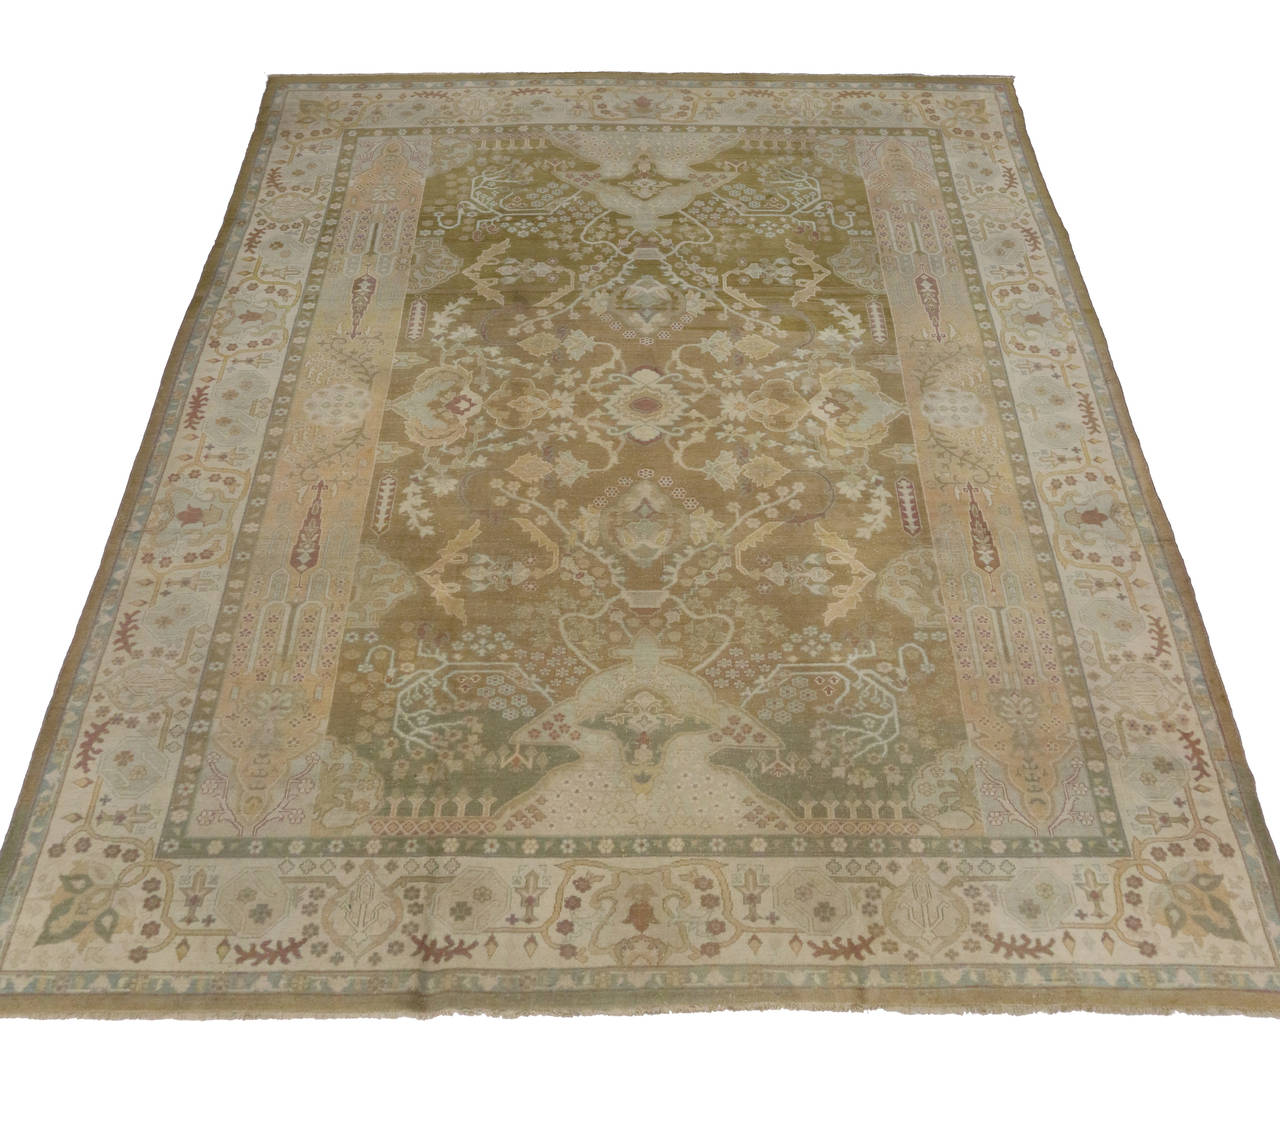 neutral color area rugs antique indian agra area rug in